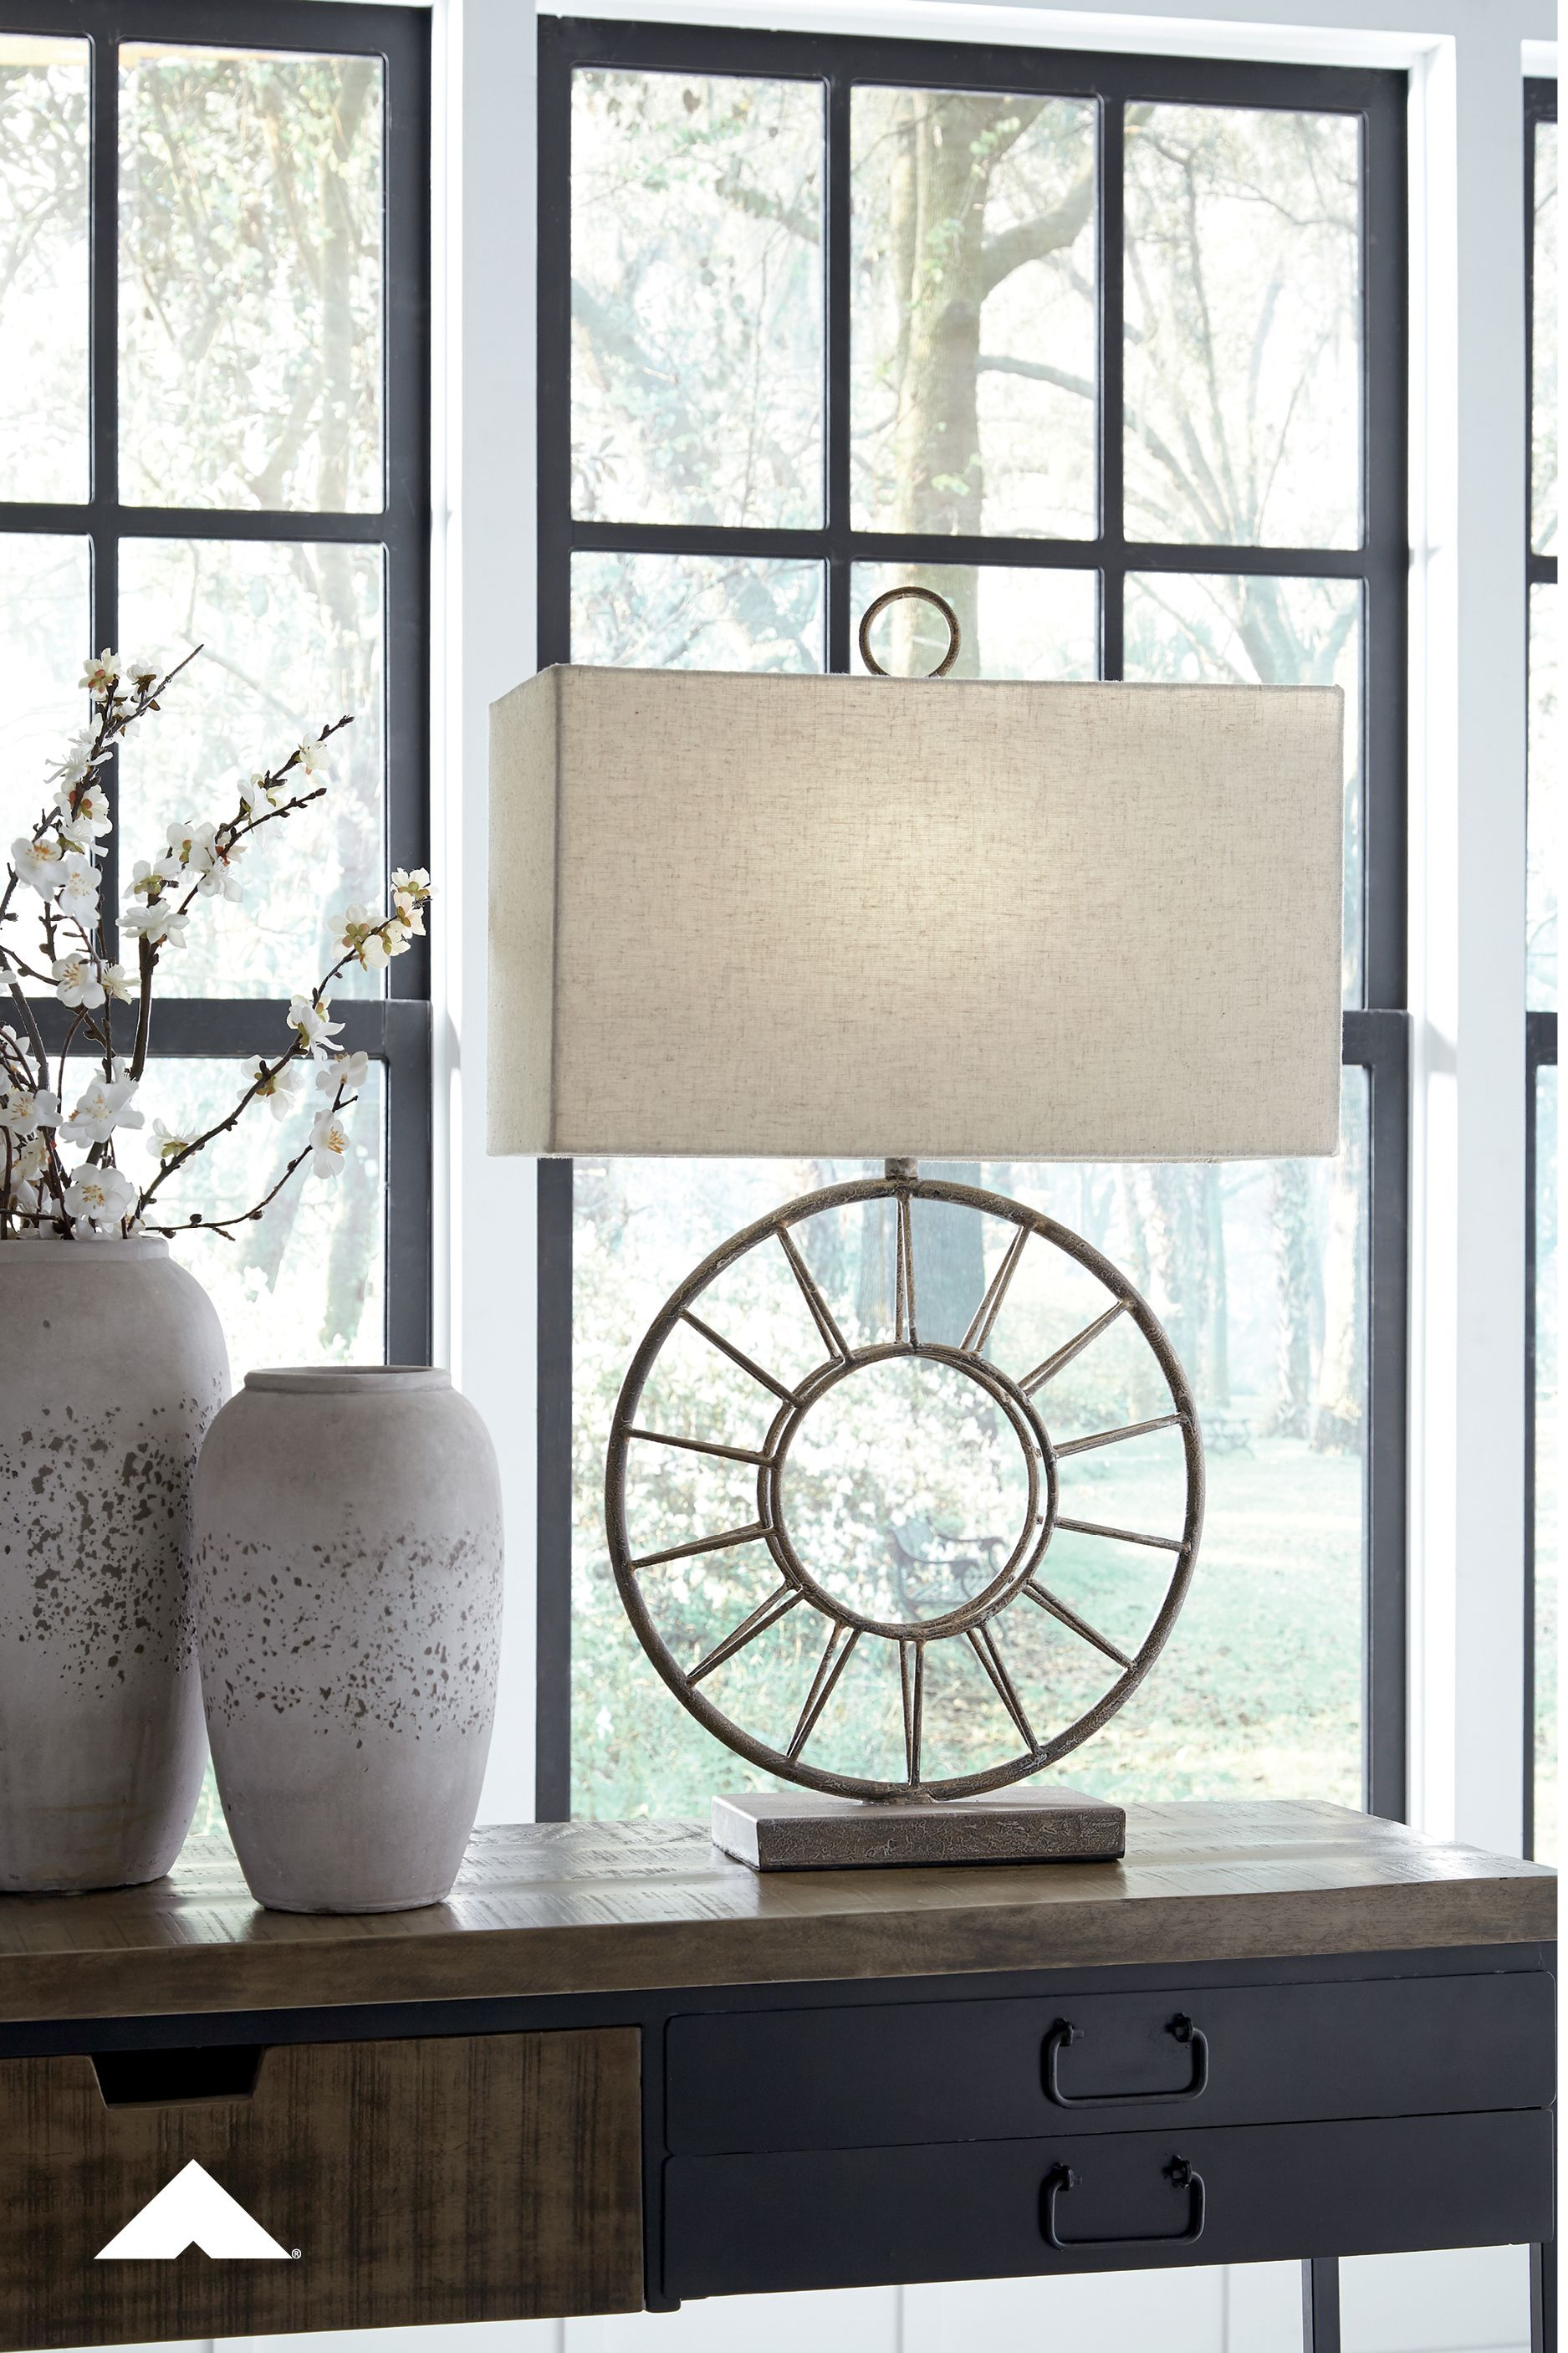 Vintage Furniture Glass Living Room Showcase Design Wood: Kavia Antique Brown Metal Table Lamp By Ashley Furniture